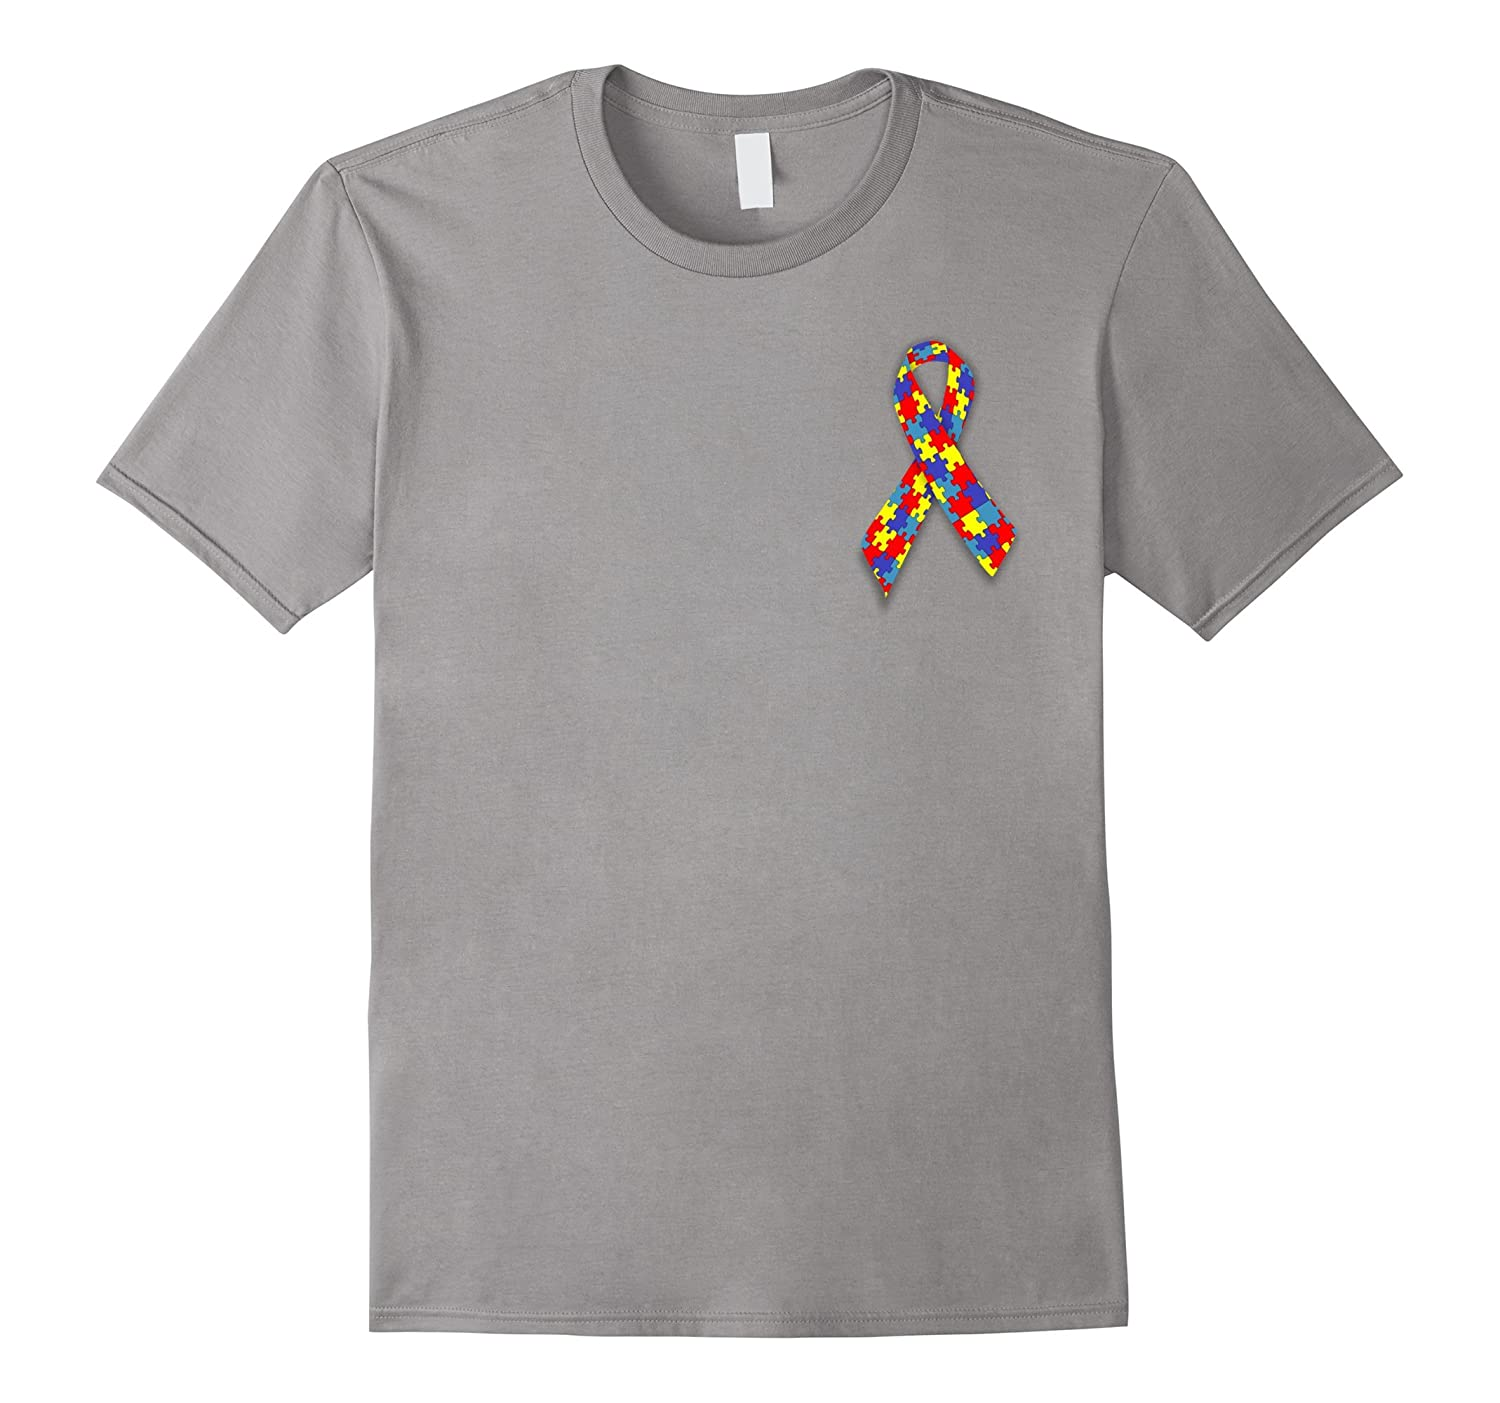 T-Shirts Autism Awareness Month is April Tops Tees Clothing-TH